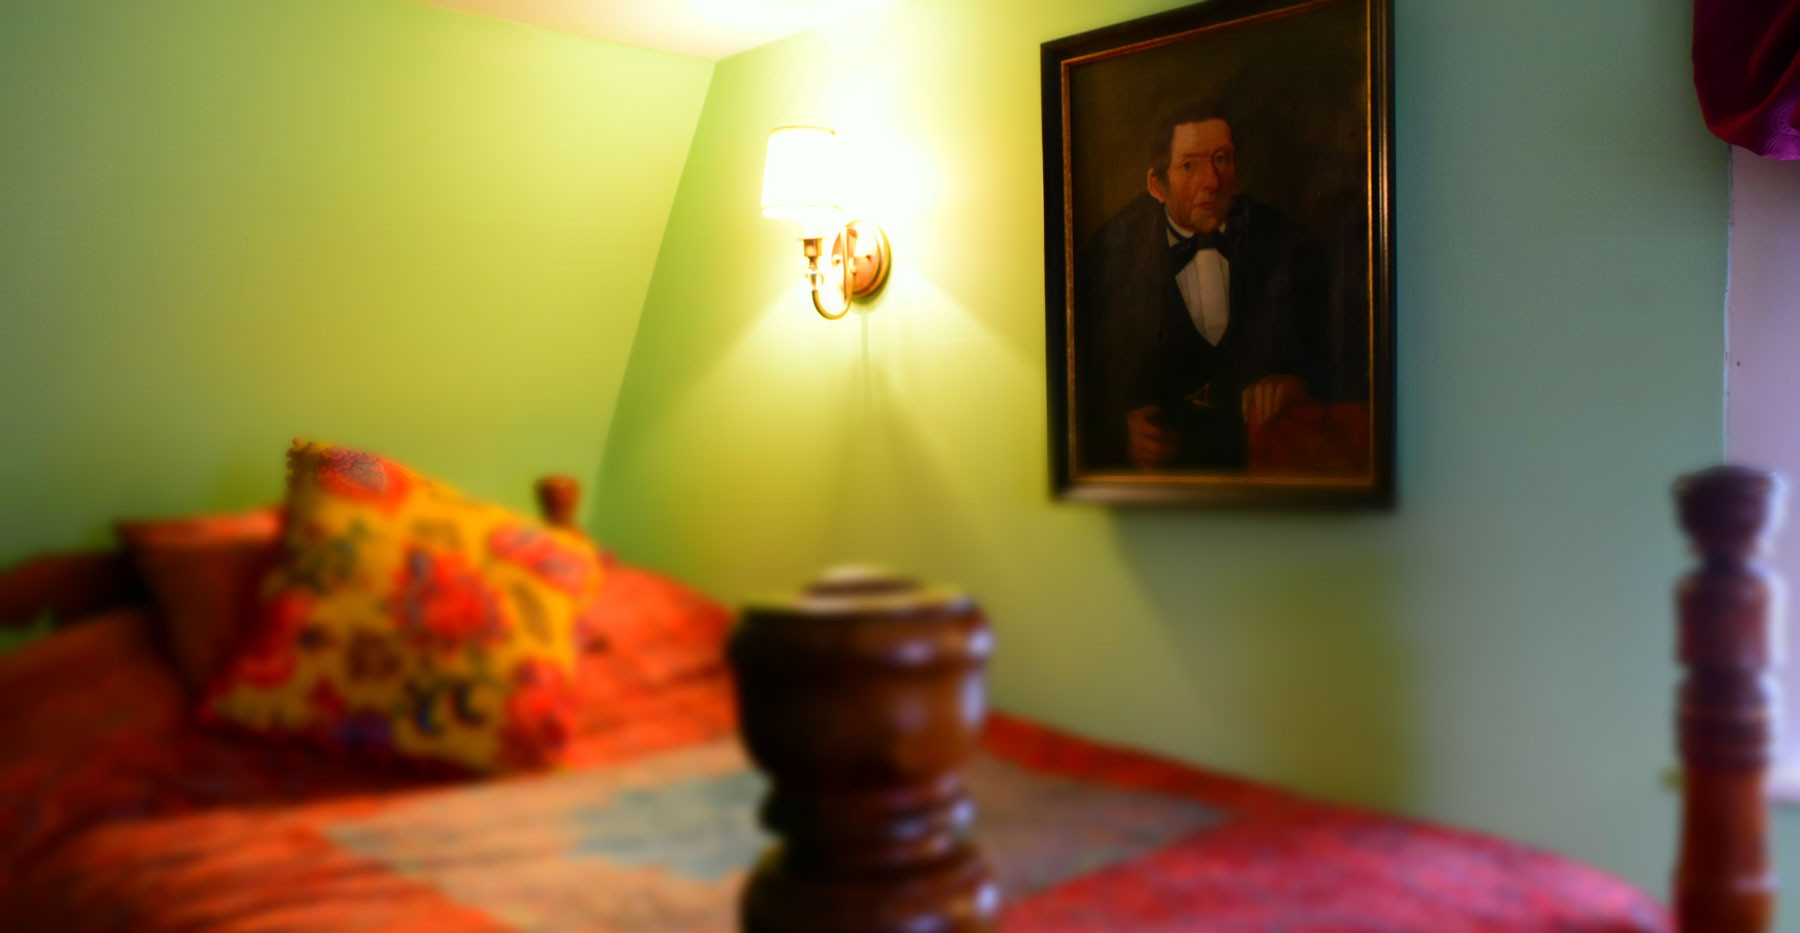 The Butler Room